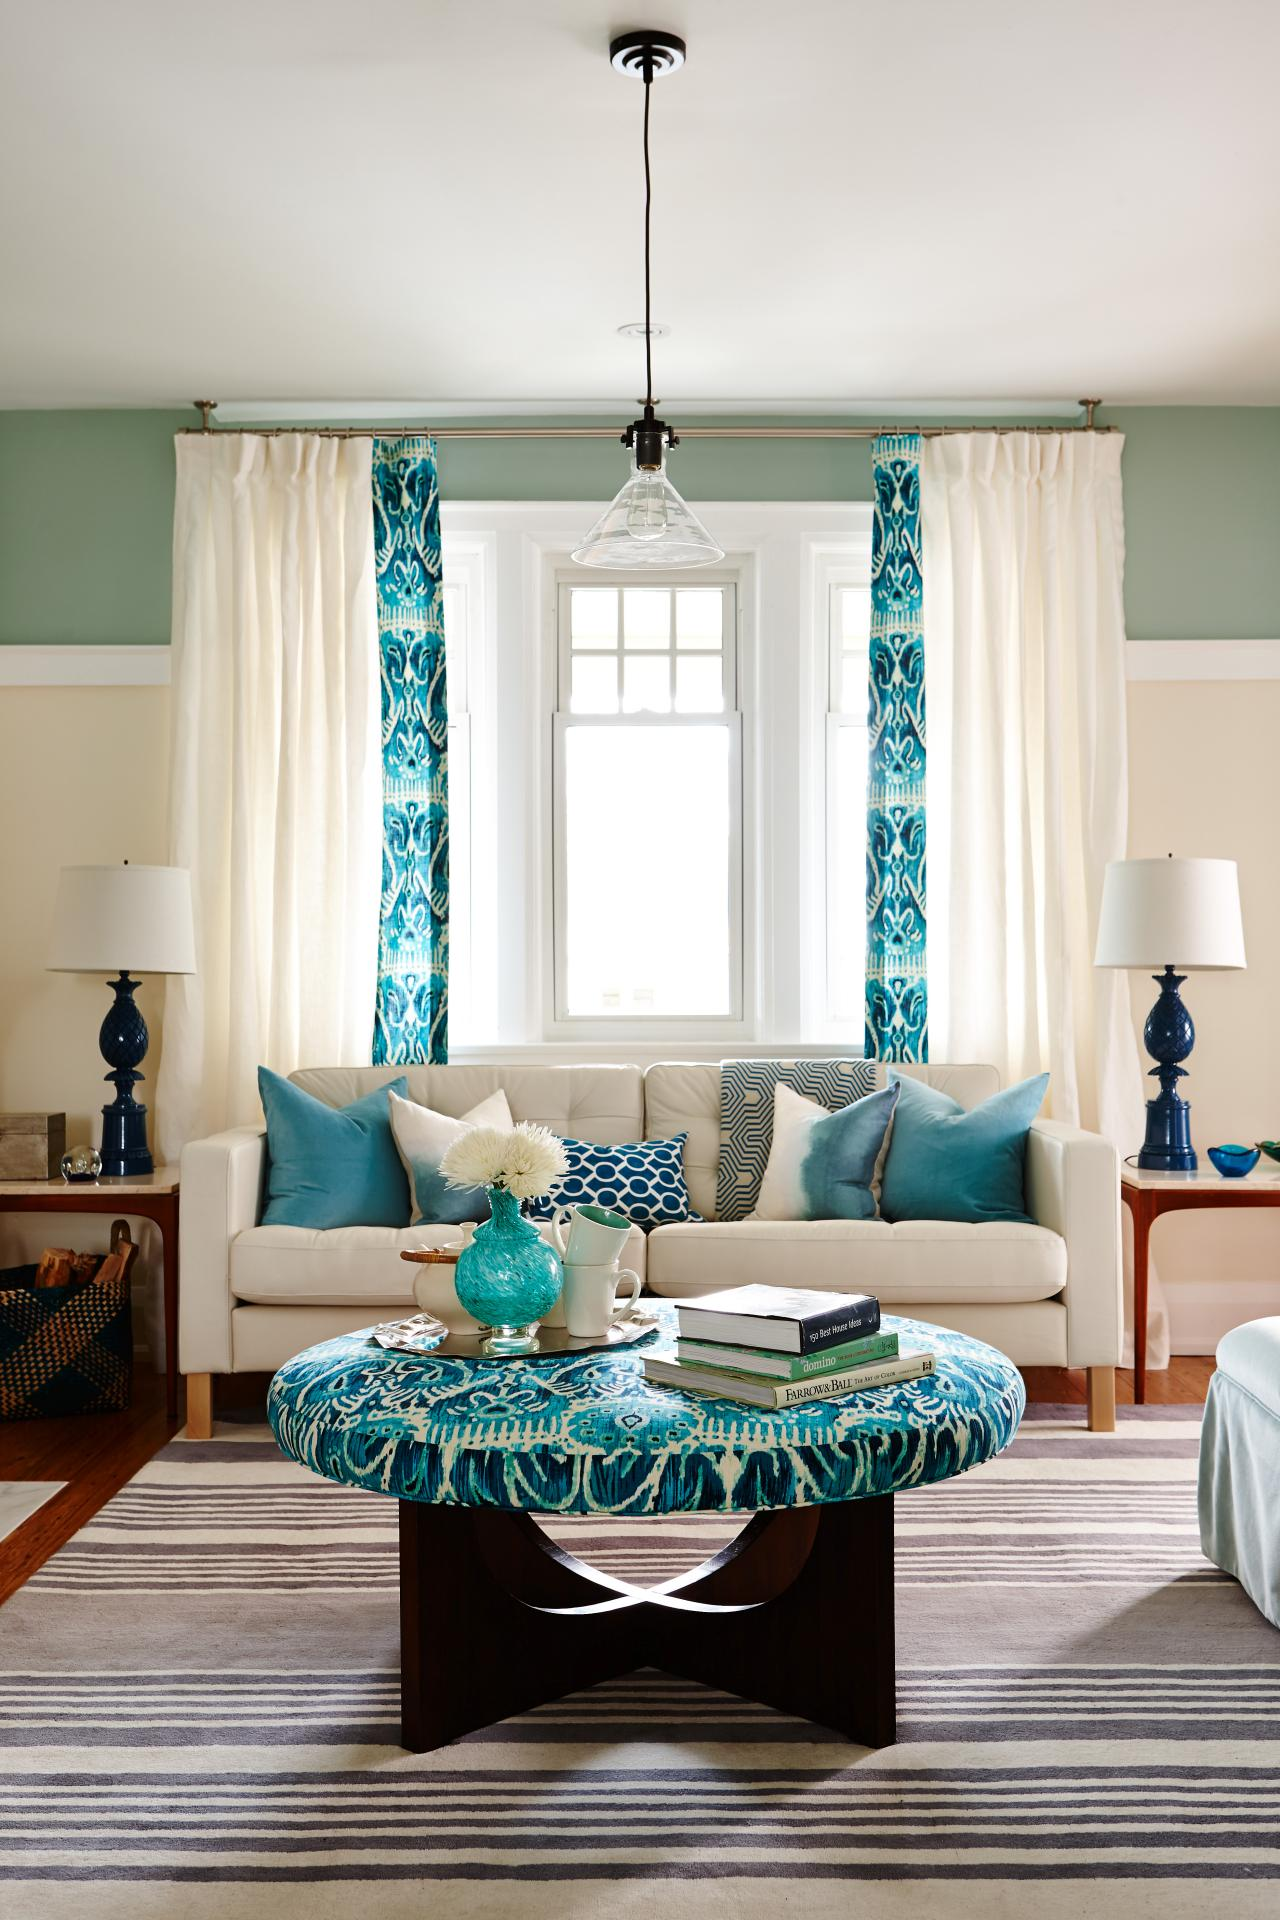 Living Room With Turquoise Accents Living Room With Turquoise Accents 10  Ideas For How To Decorate